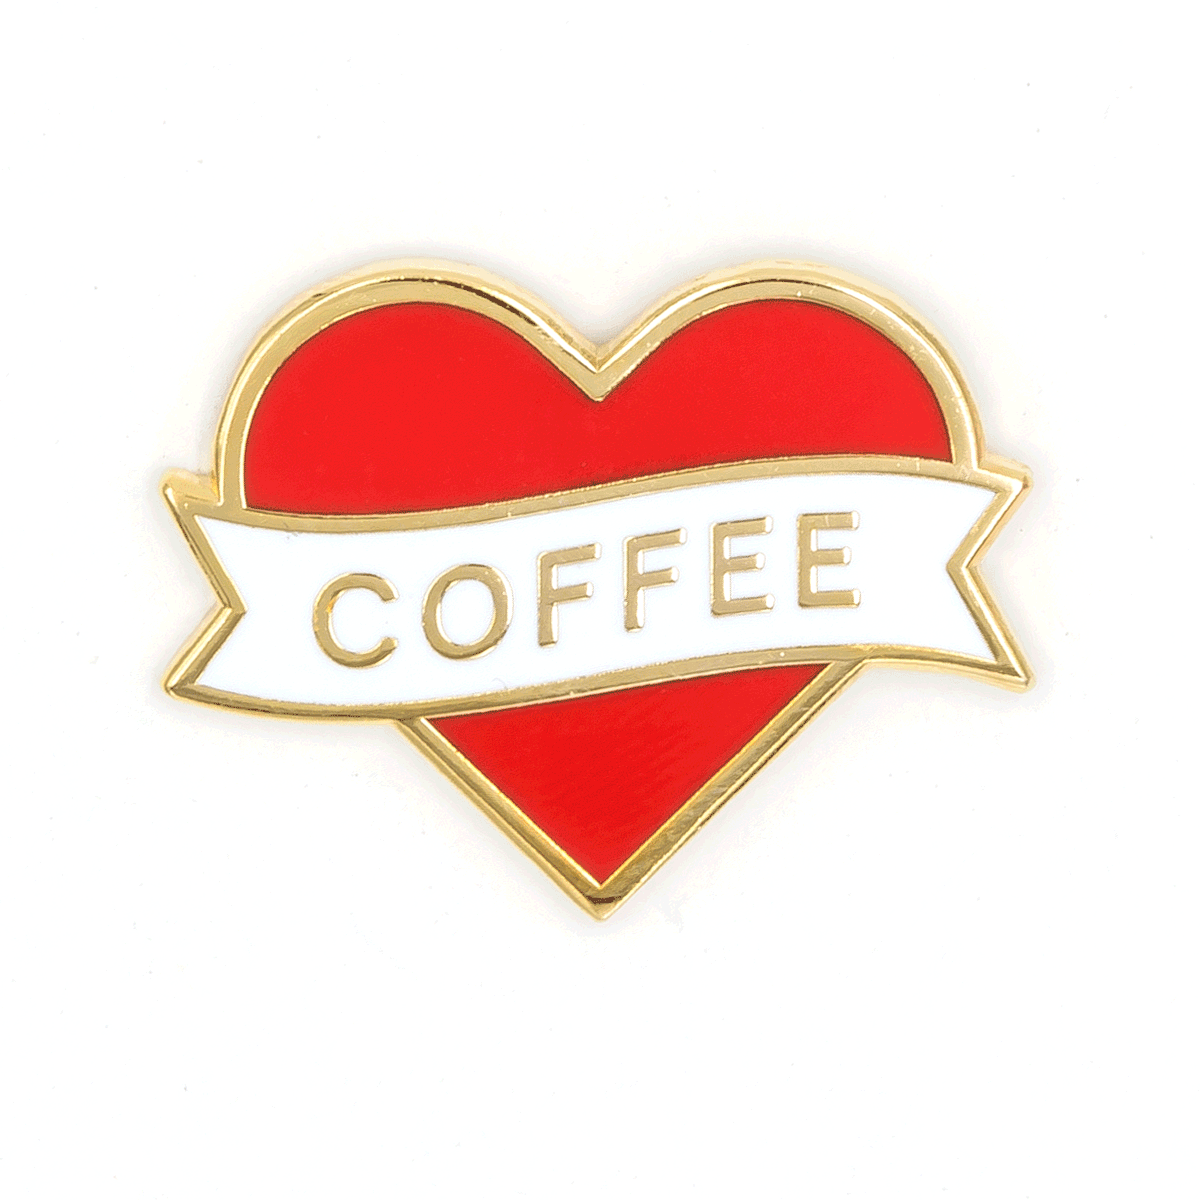 Enamel Pin - Heart Coffee, These Are Things, Handcrafted Home Goods and Gifts